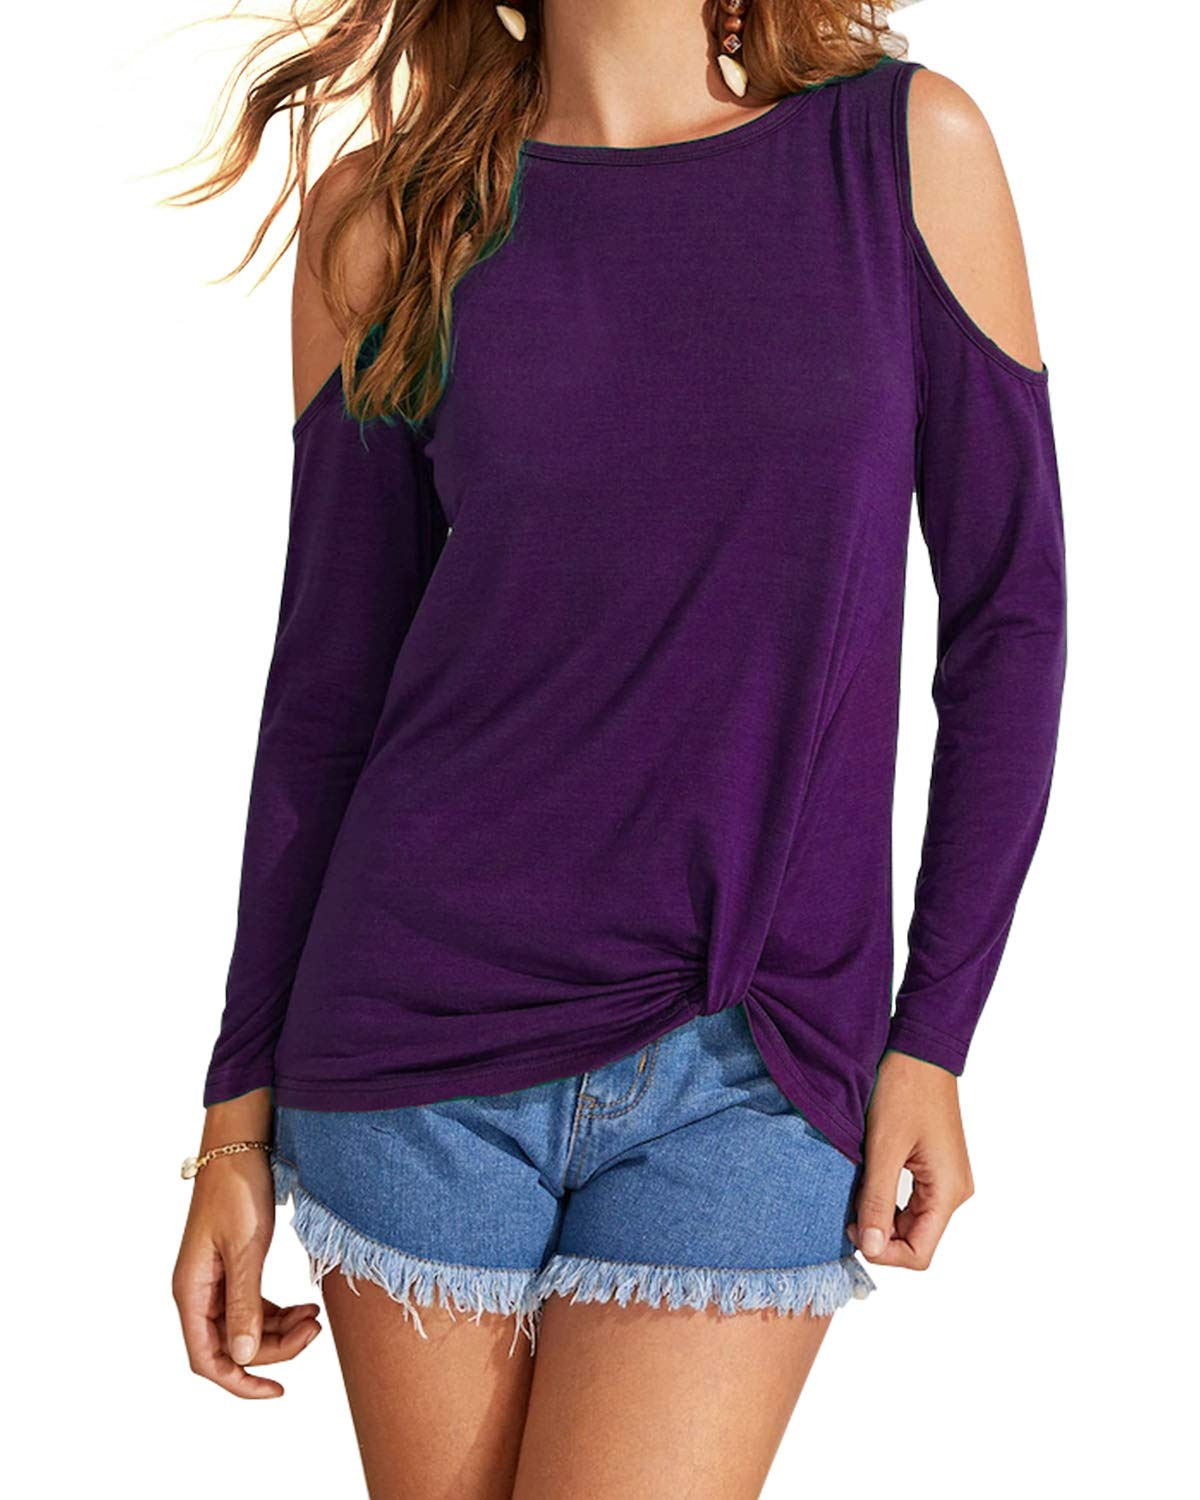 COMFY LONG SLEEVE COLD SHOULDER SHIRT